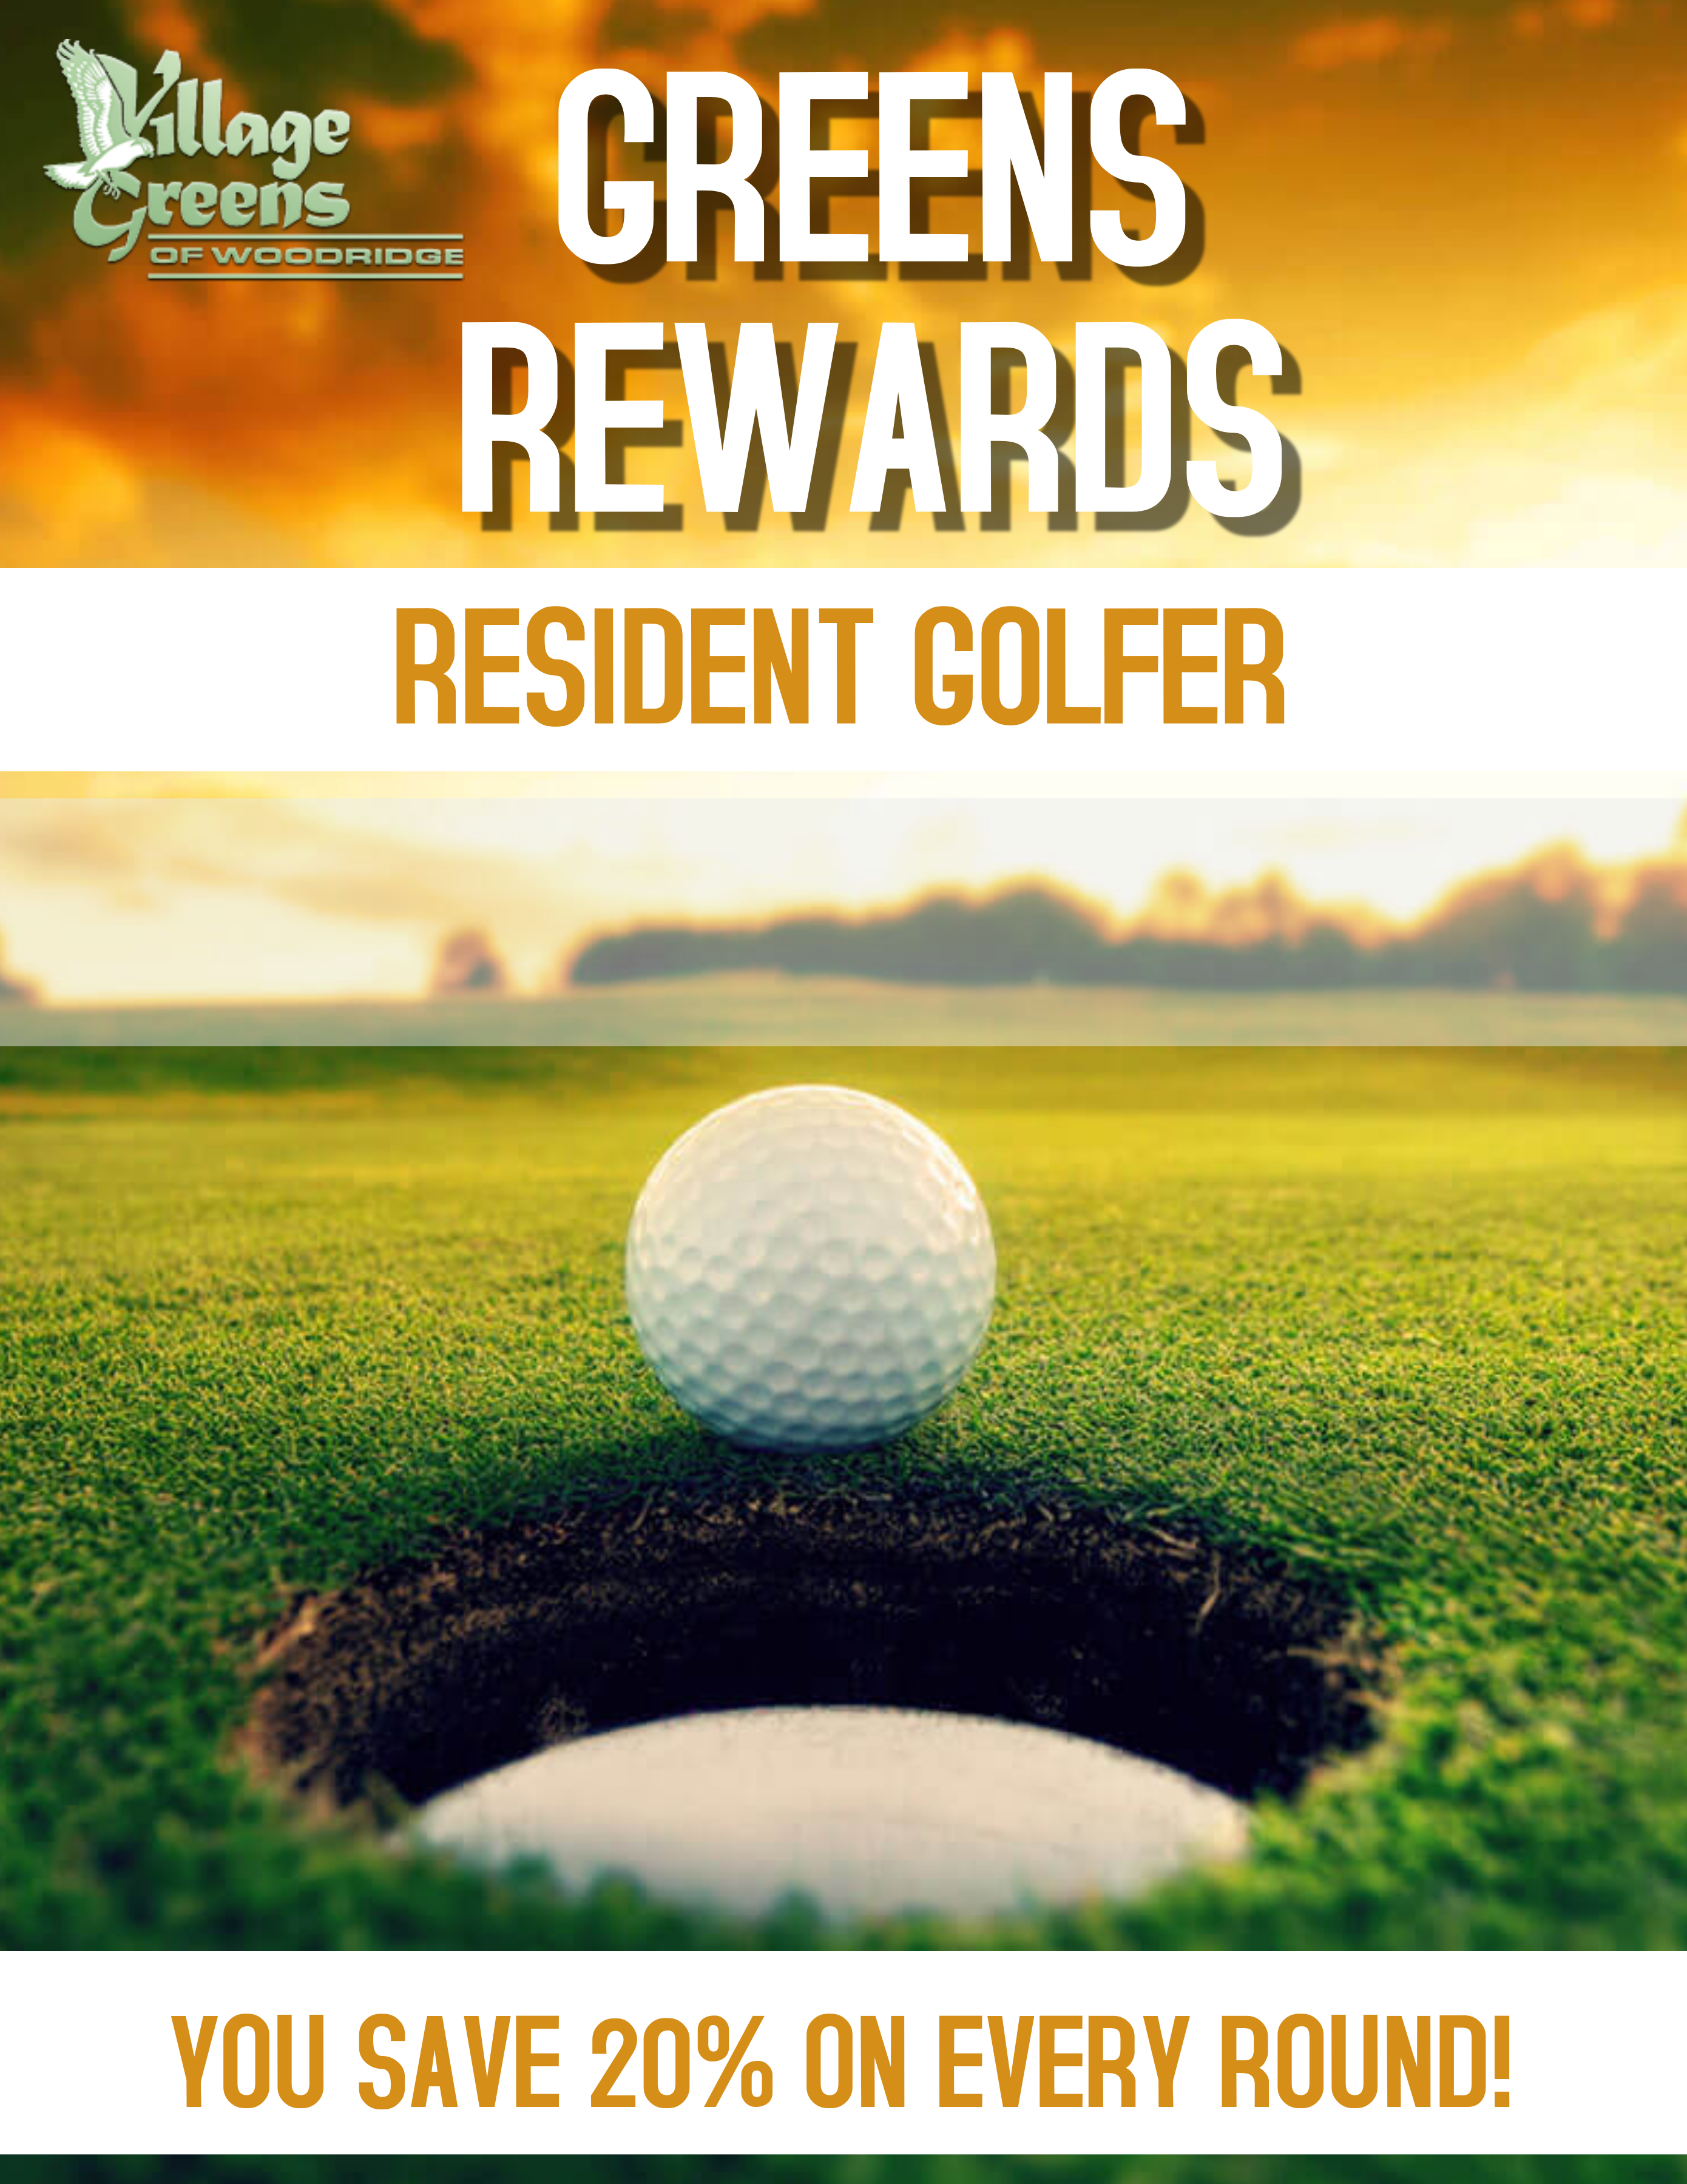 Greens Rewards Resident